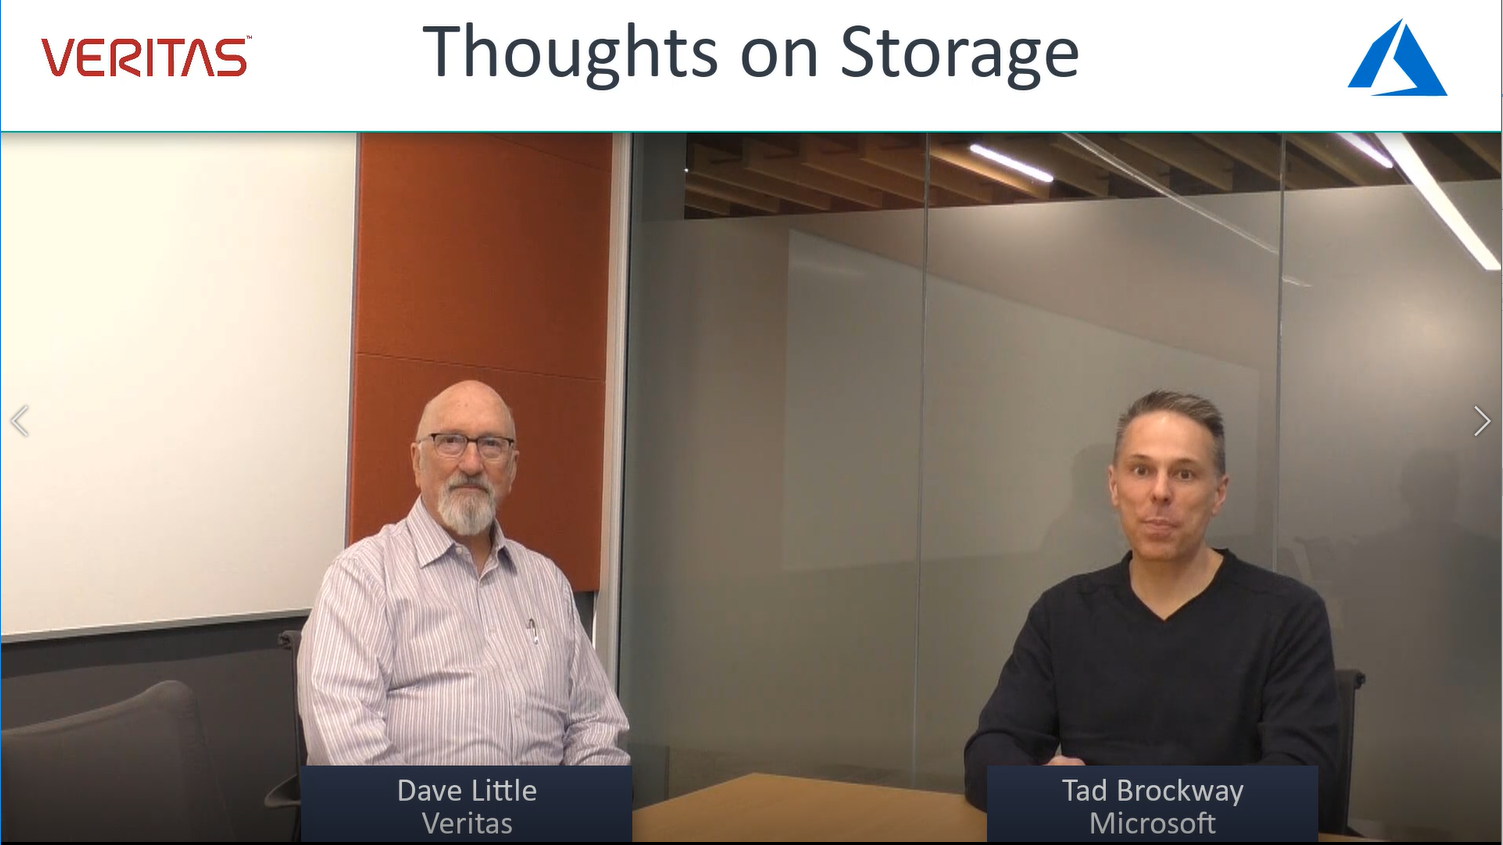 Thoughts on Storage with Veritas Technologies